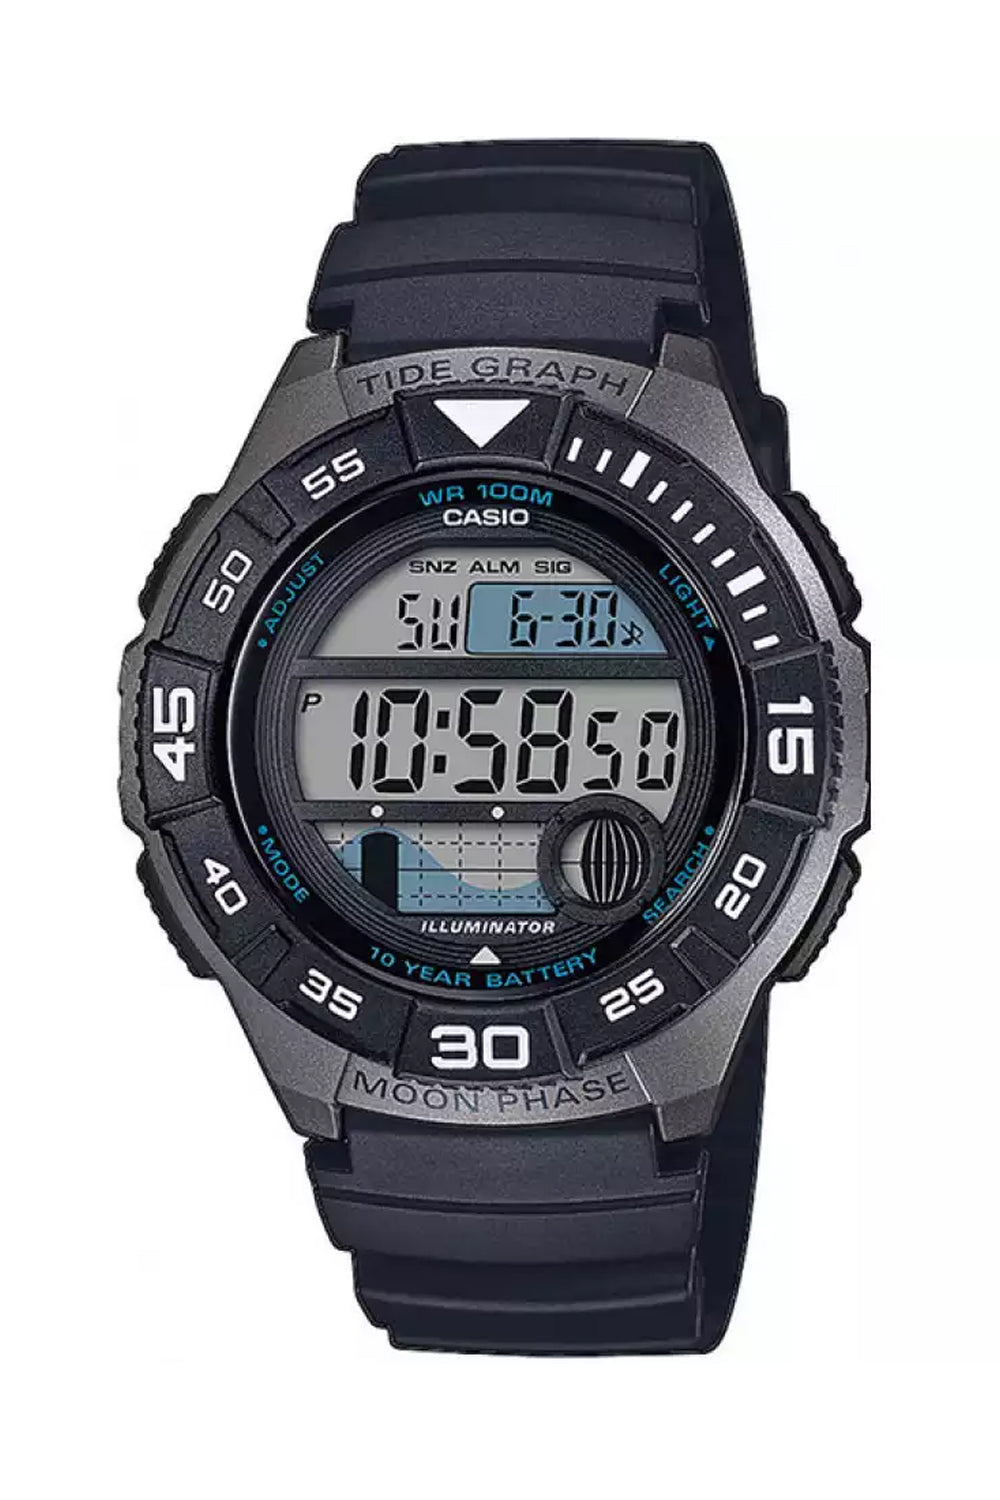 CASIO WS-1100H-1AVEF Marine Design for Men's rannekello